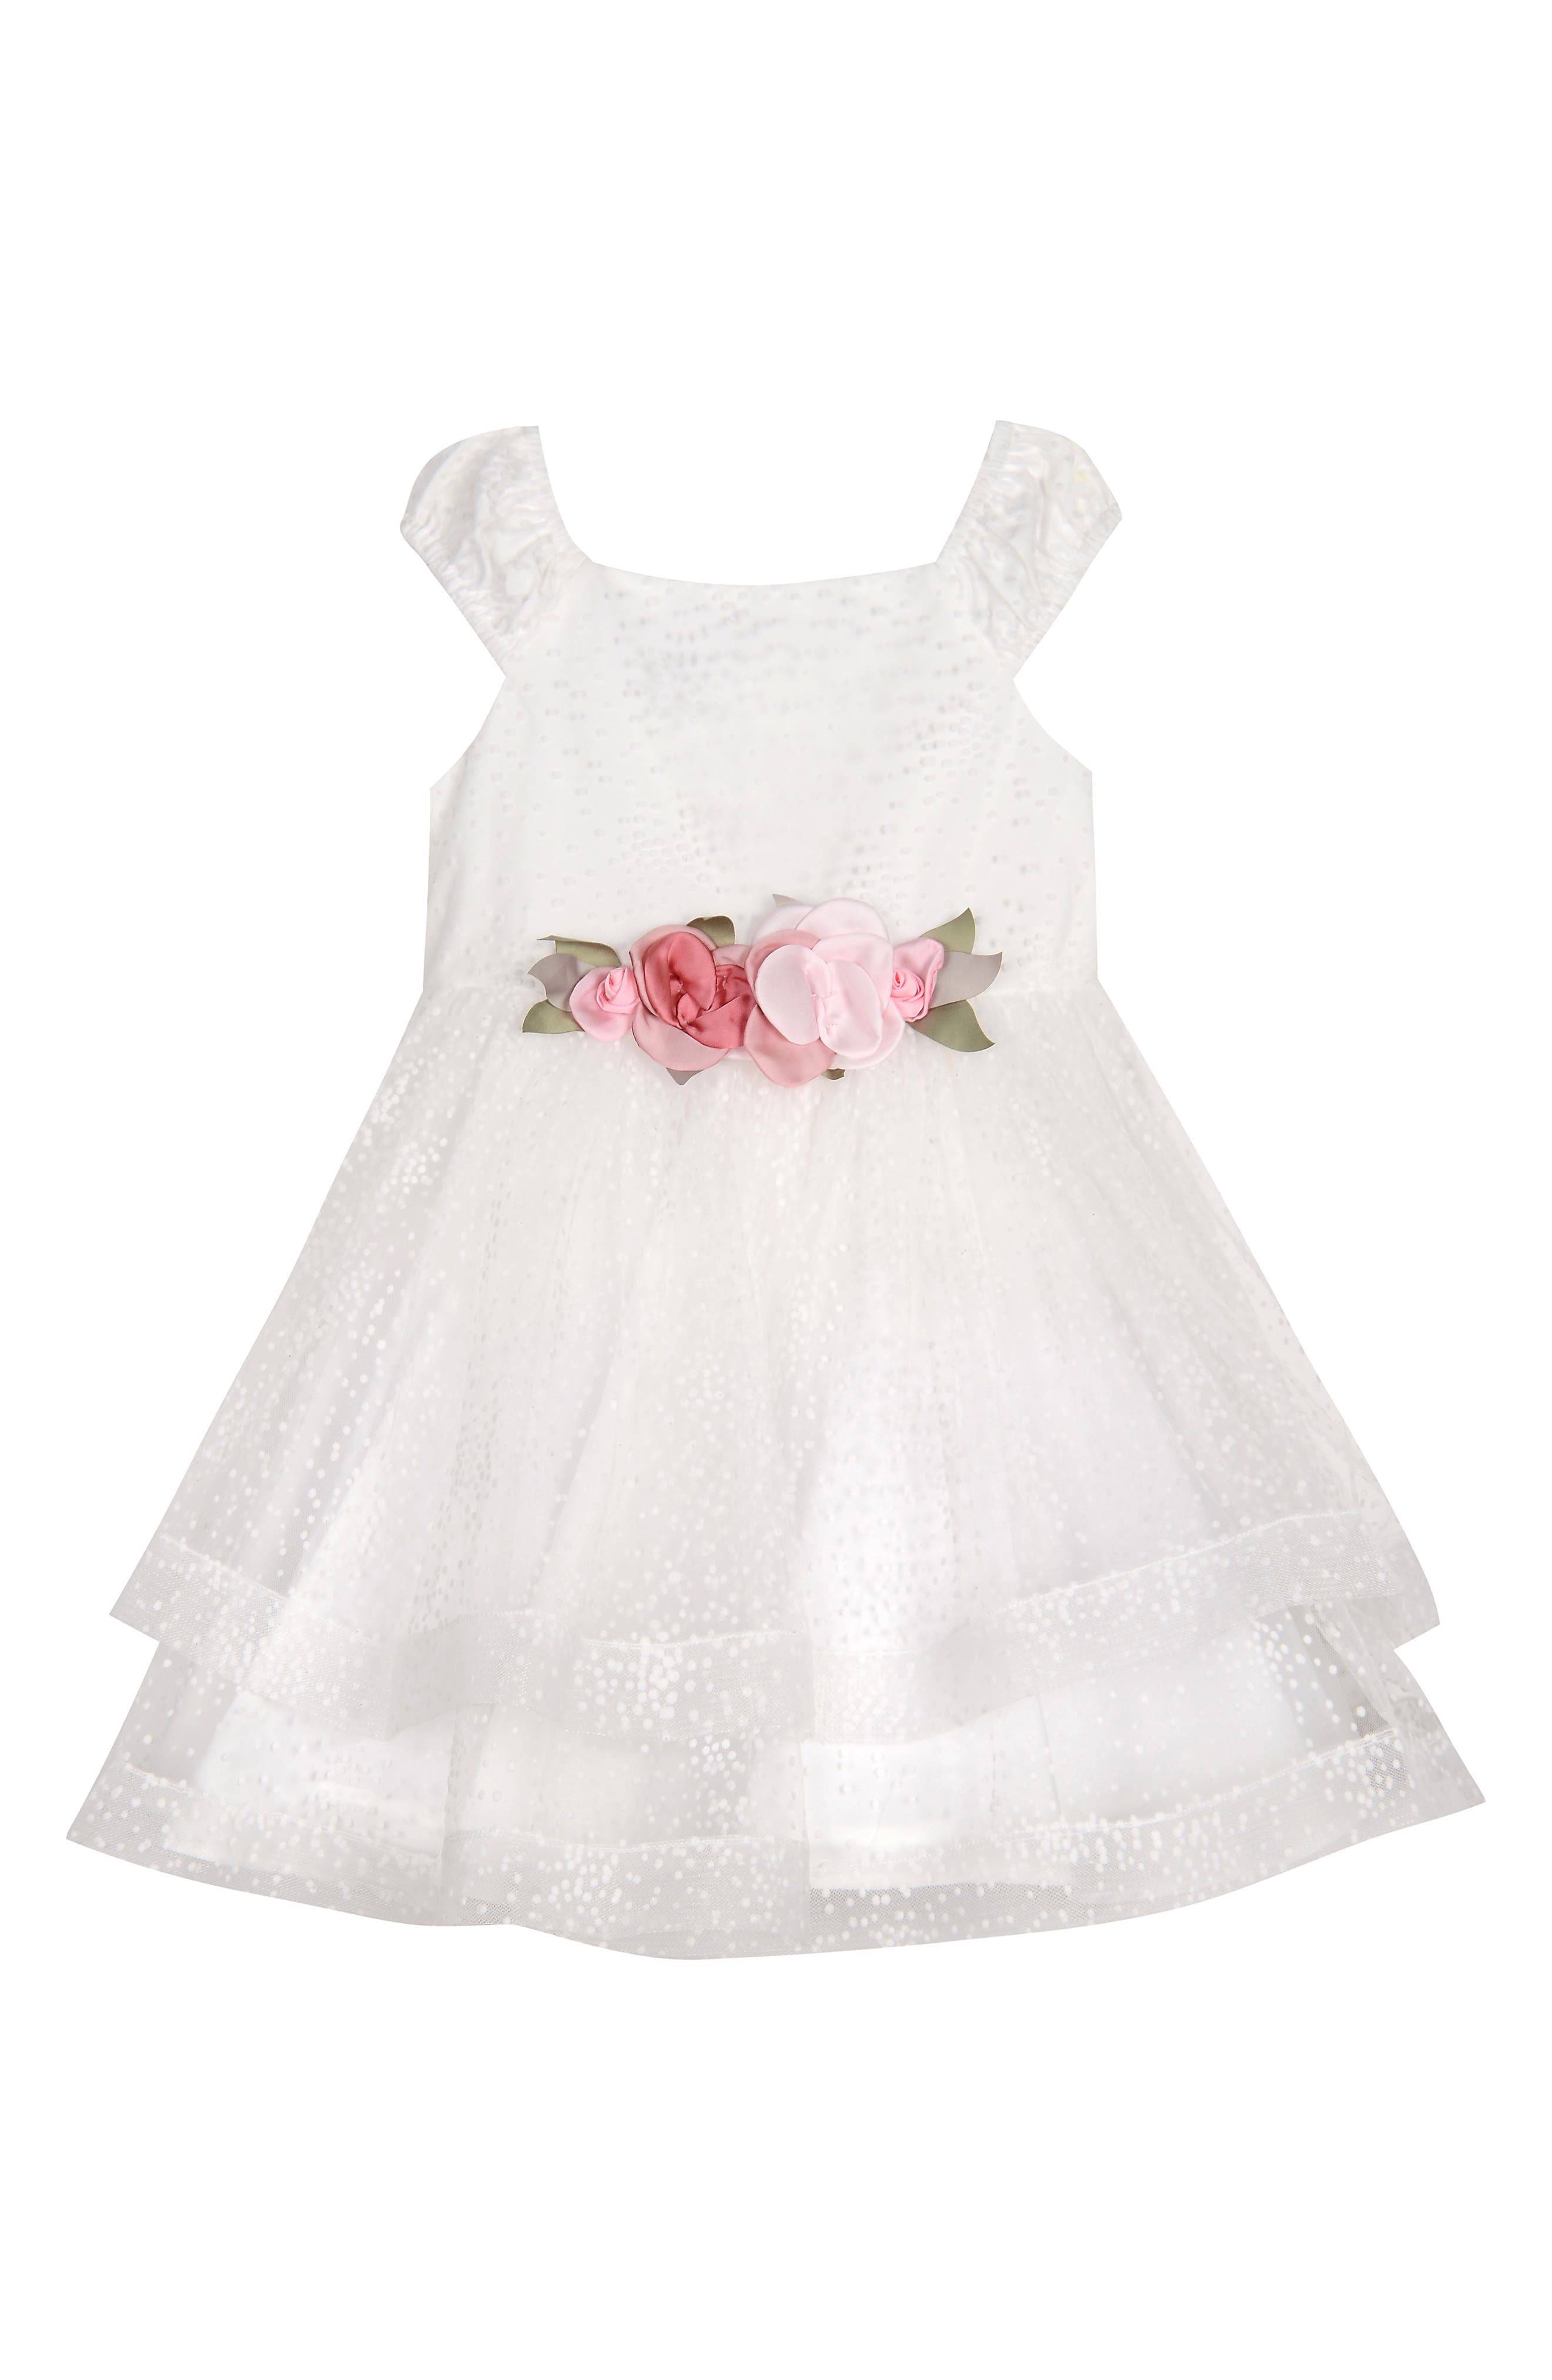 PIPPA & JULIE Dot Texture Flower Girl Dress, Main, color, WHITE